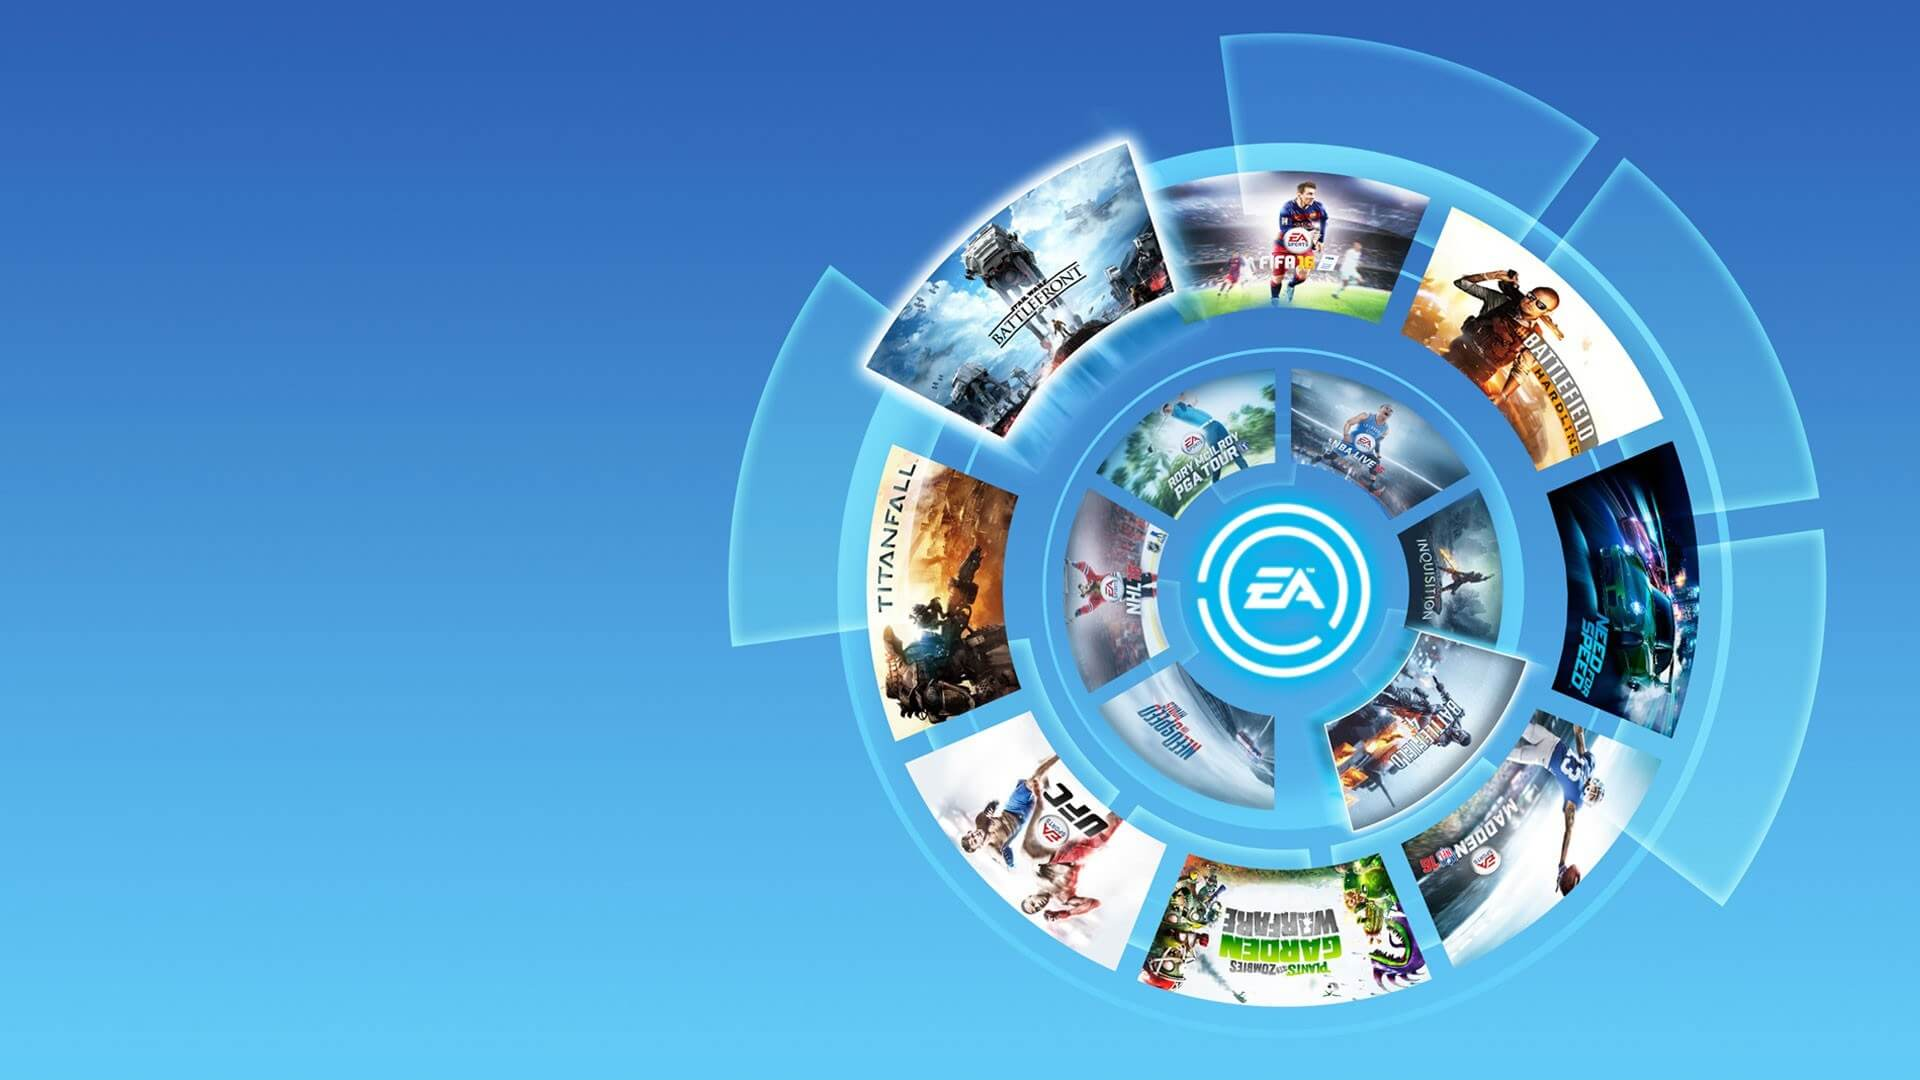 PlayStation 4 owners can take advantage of EA Access starting this summer